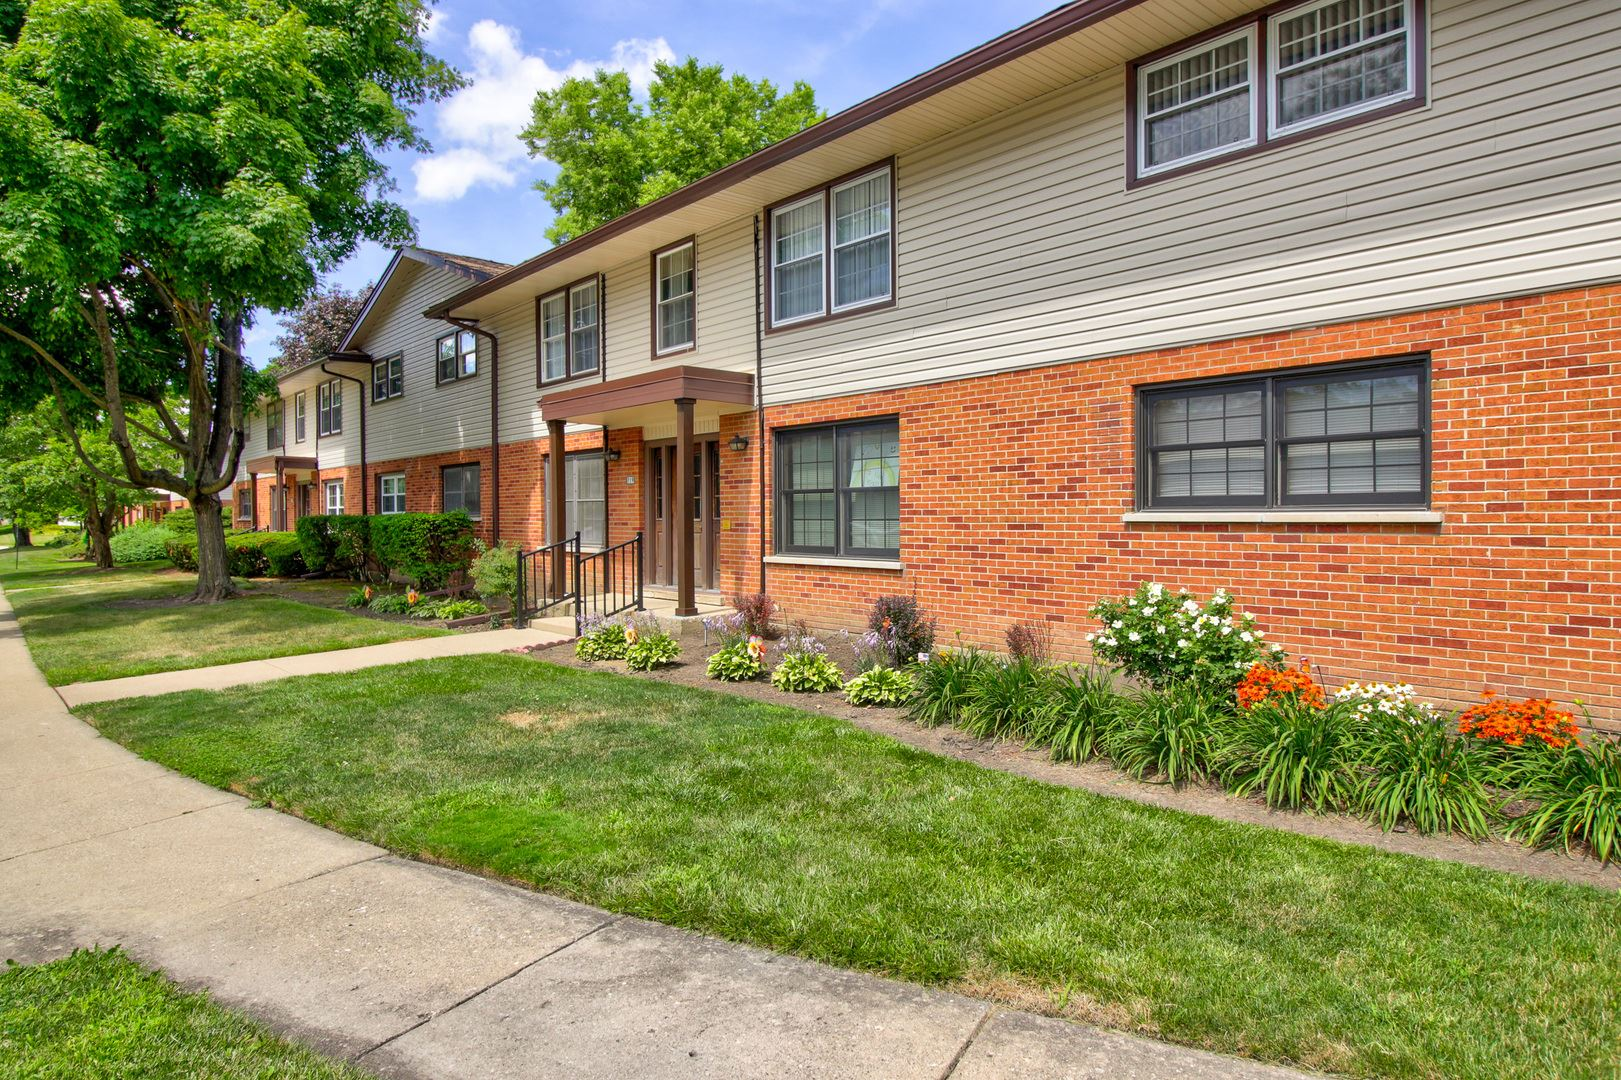 219 WASHINGTON Square #A, Elk Grove Village, IL 60007 - #: 10795568